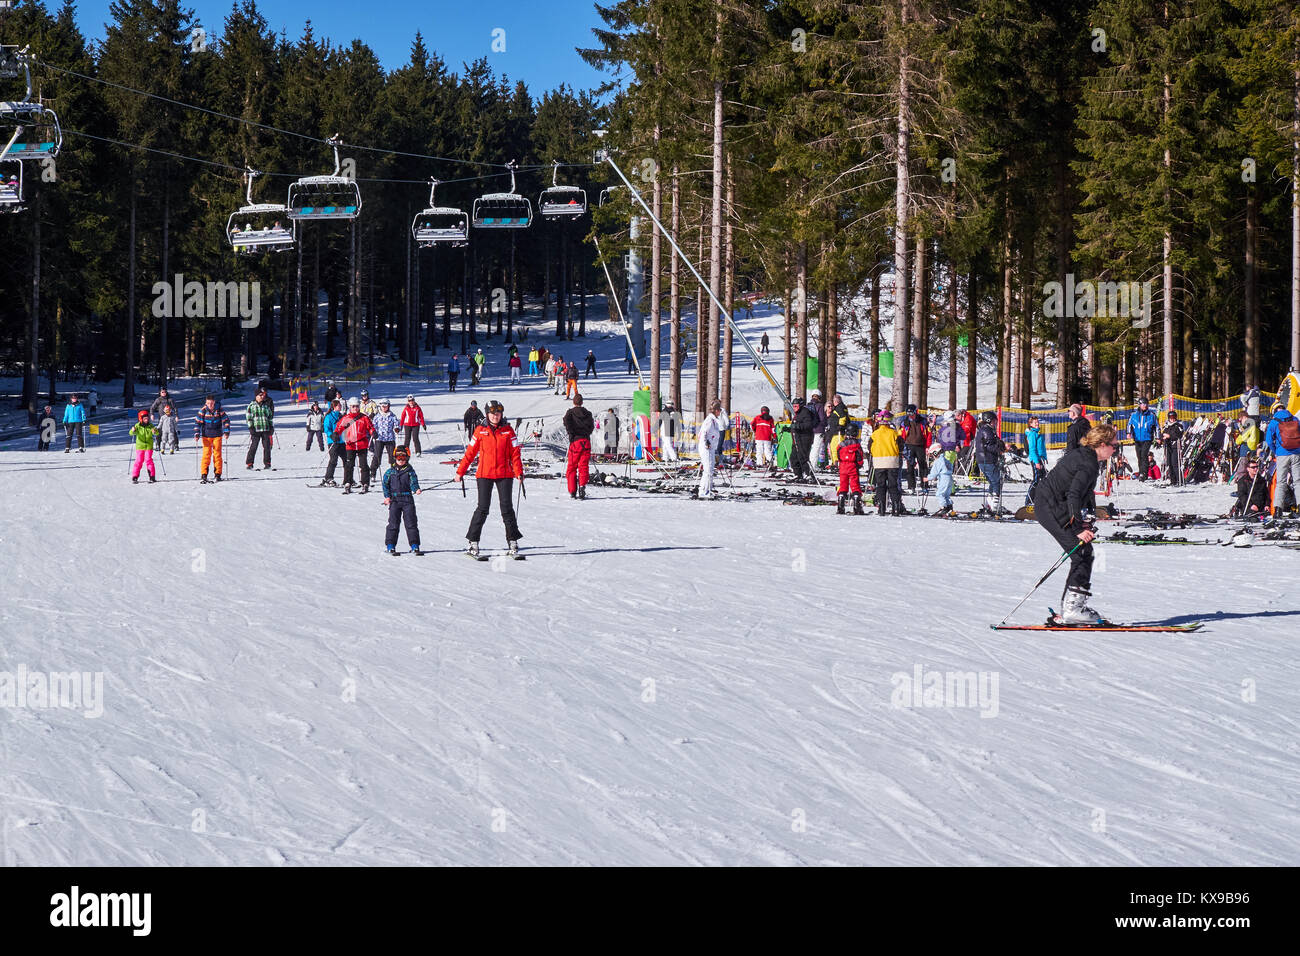 WINTERBERG, GERMANY - FEBRUARY 15, 2017: Many skiers taking a break on a piste at Ski Carousel Winterberg - Stock Image